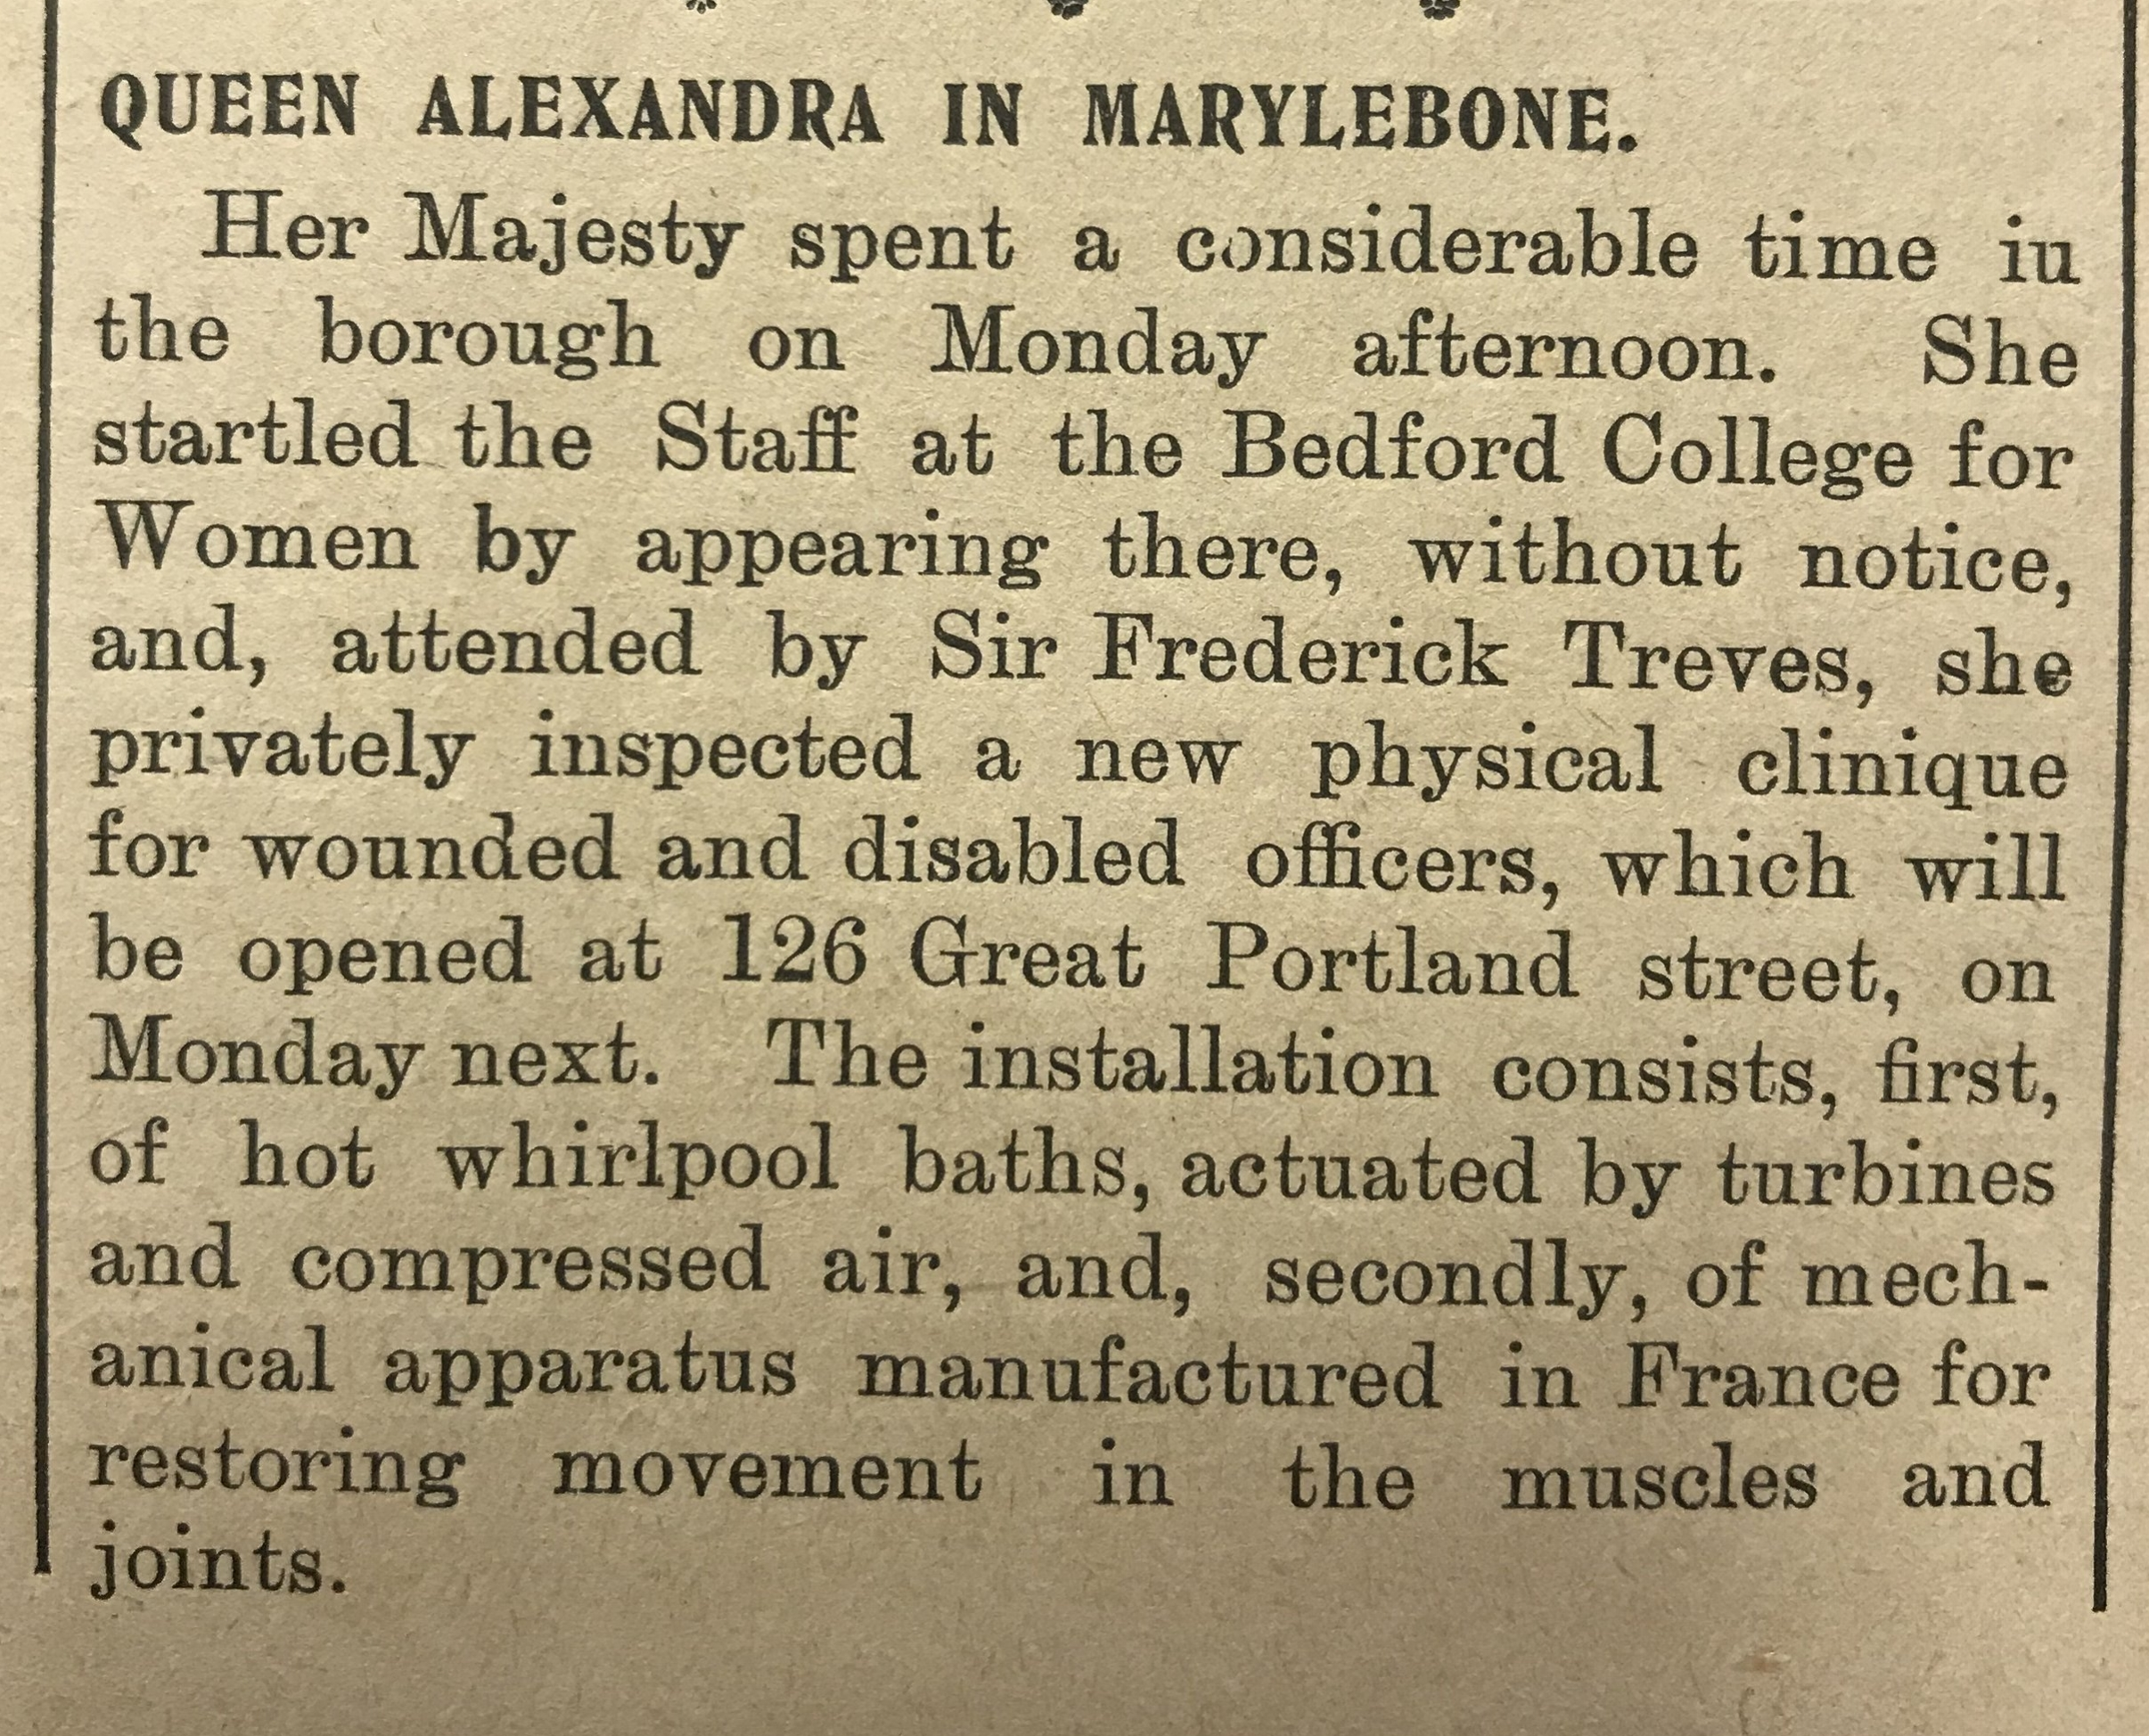 Queen Alexandra's visit and enthusiastic account of the clinic's facilities.